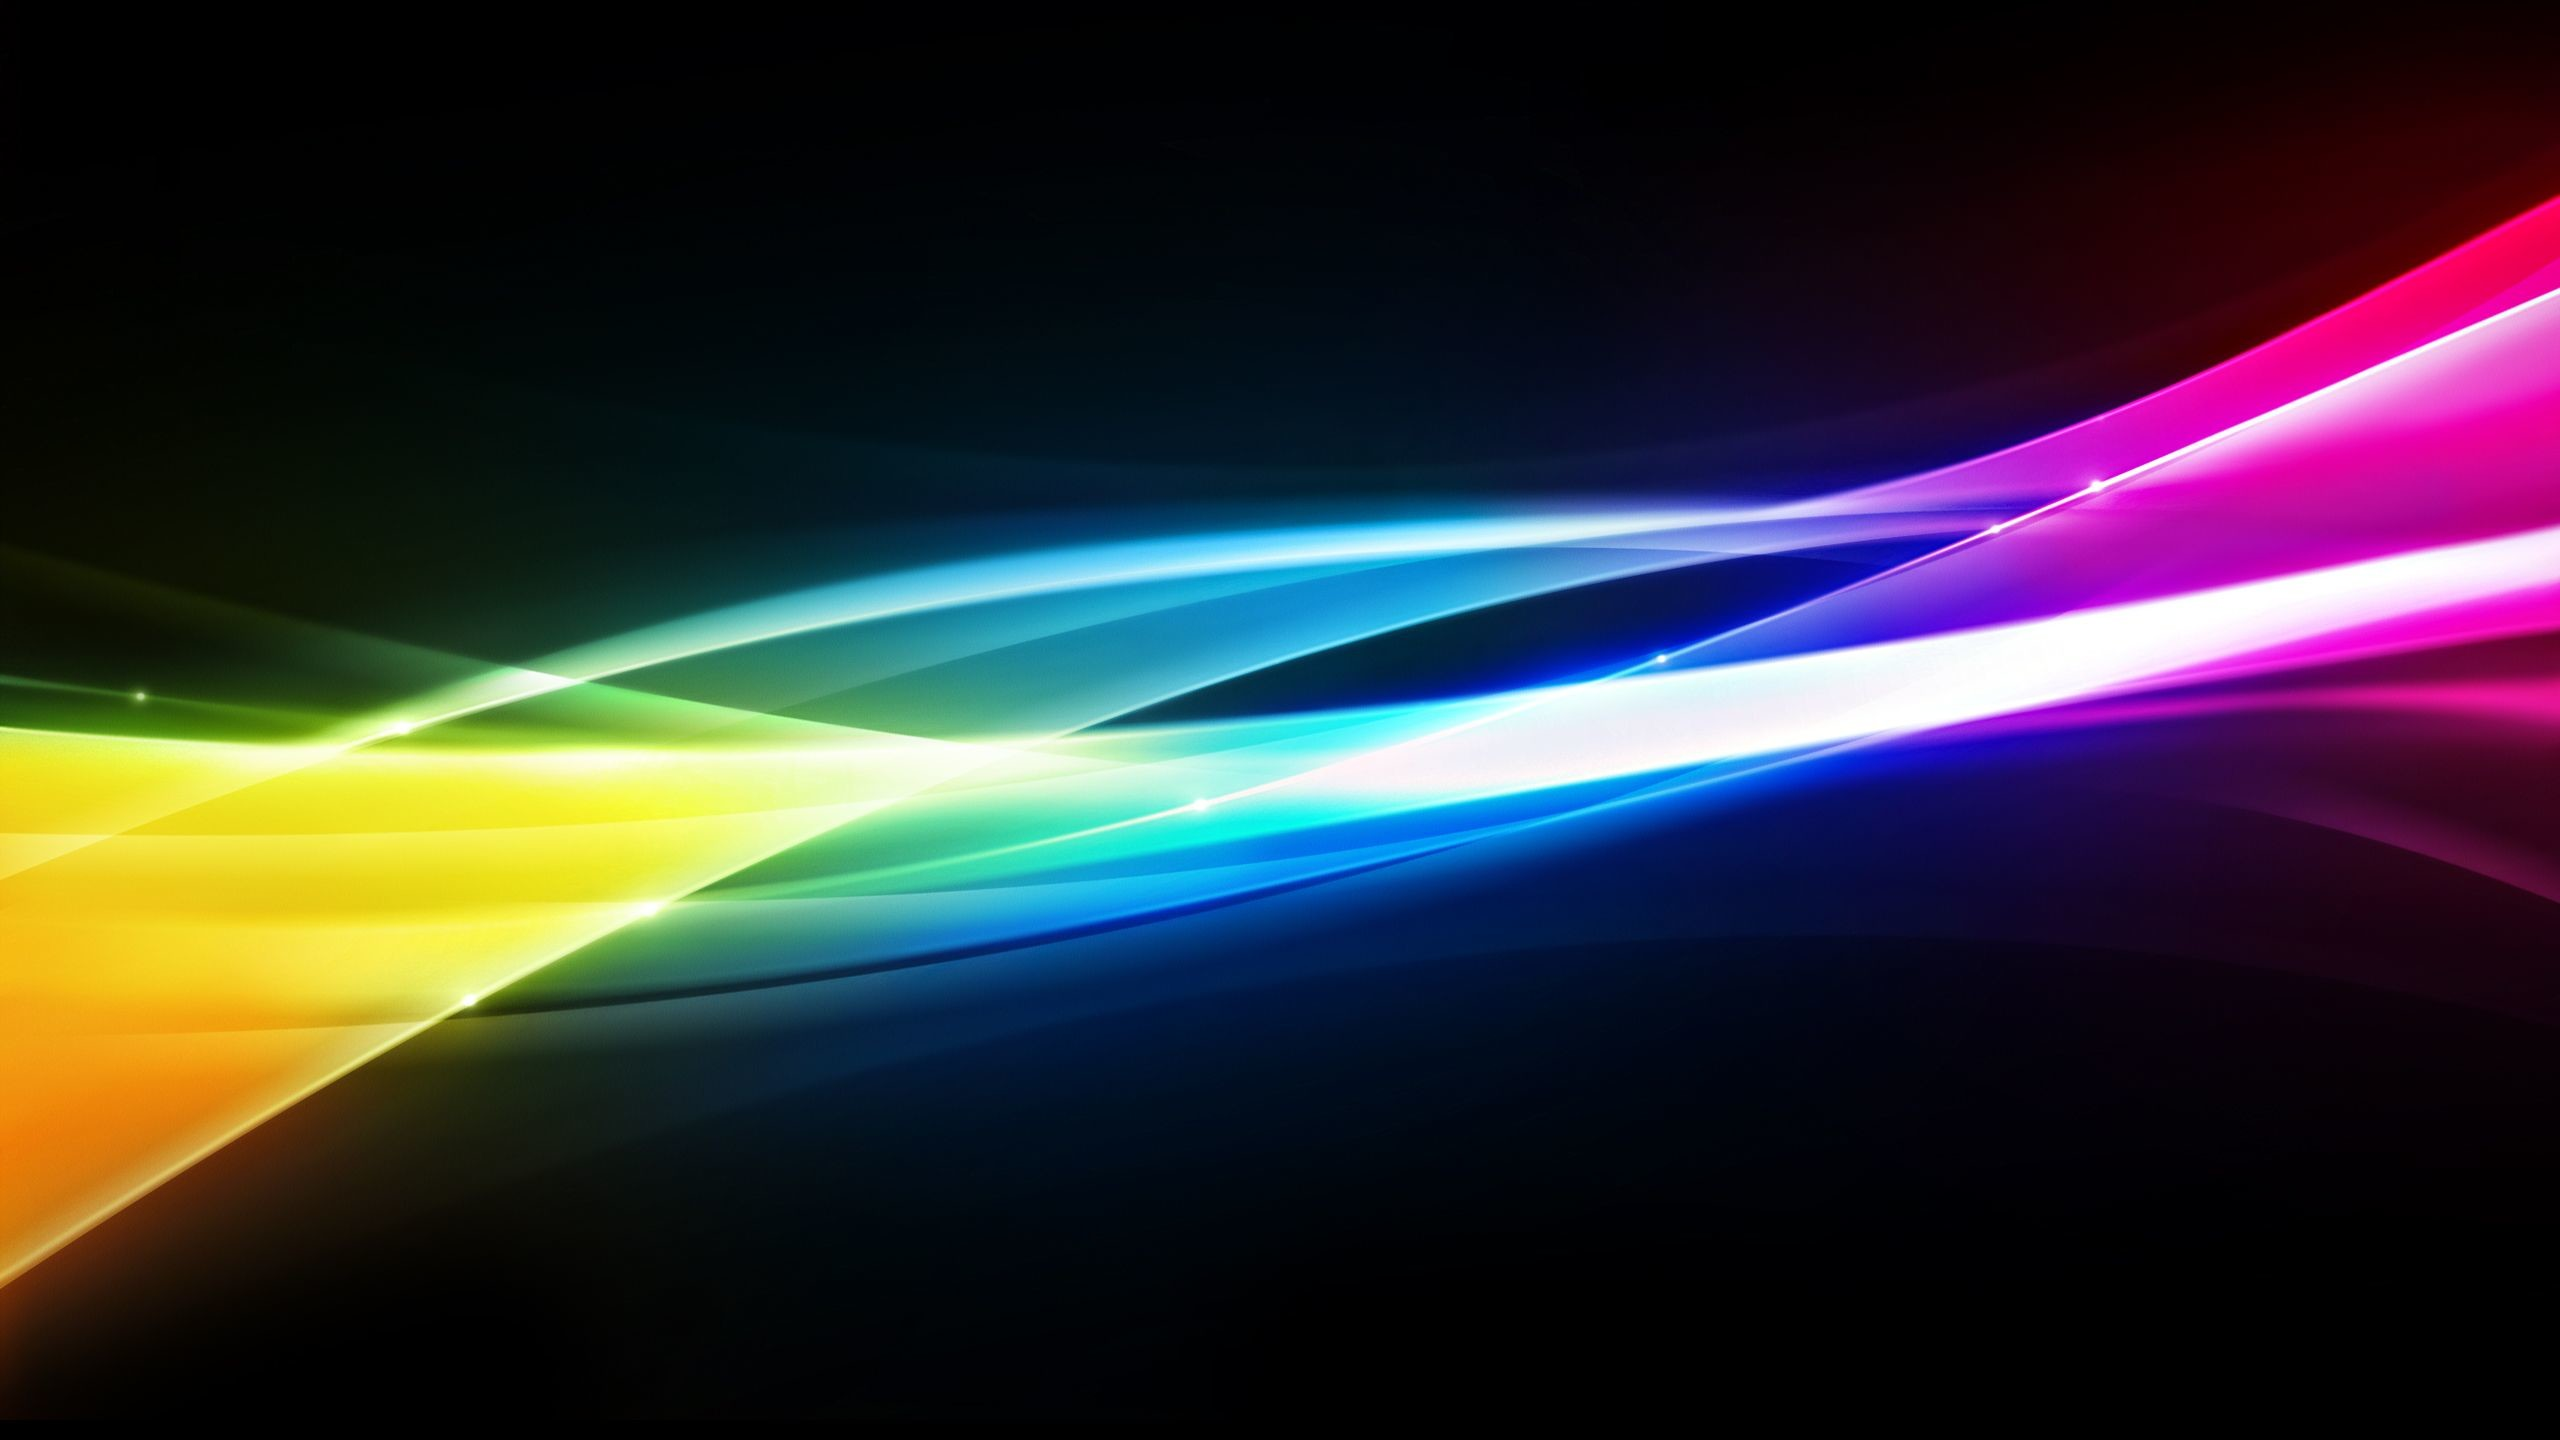 Game Free Ipad Wallpapers: Cool PS3 Backgrounds (65+ Images